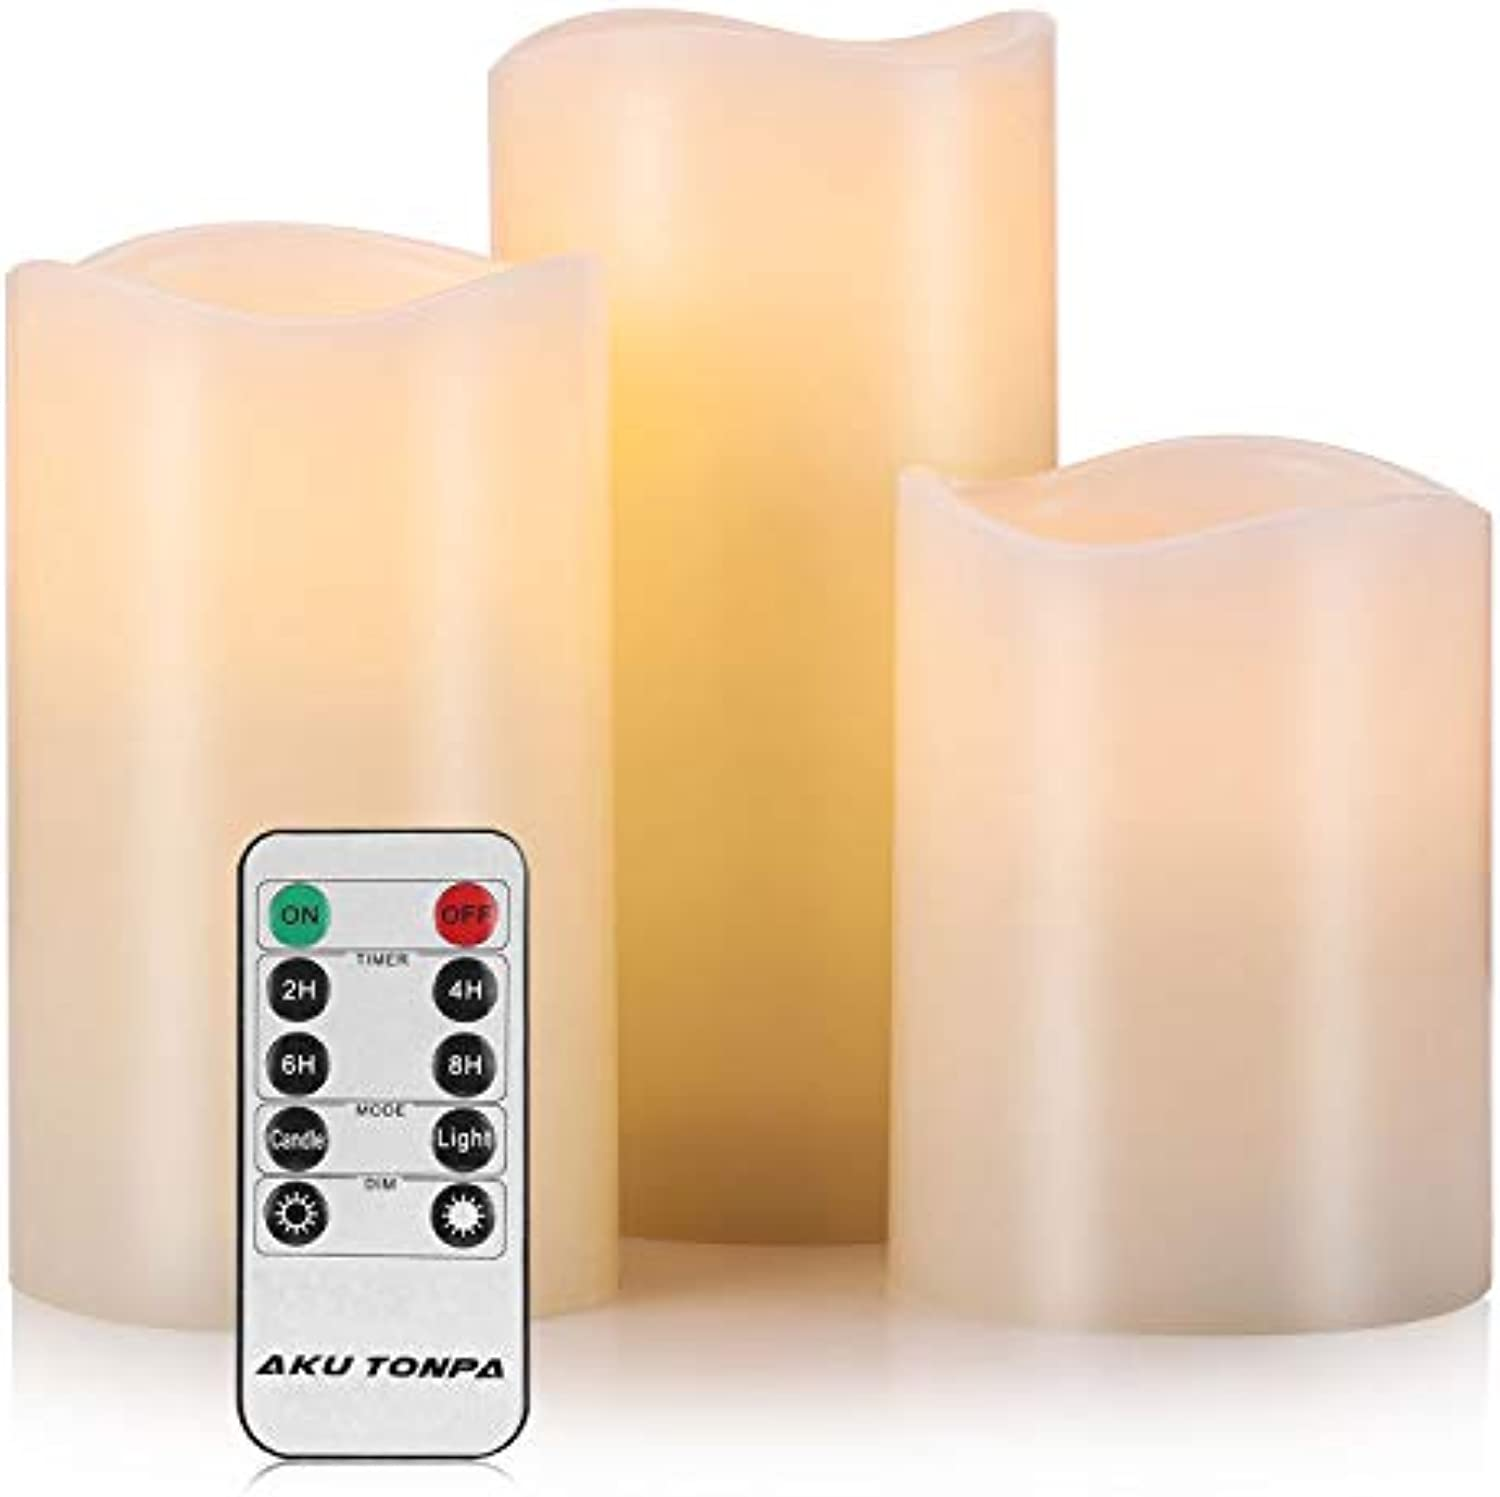 Aku Tonpa Flameless Candles Battery Operated Pillar Real Wax Flickering Electric LED Candle Gift Sets with Remote Control Cycling 24 Hours Timer Warm Weiß Lights 4  5  6  Pack of 3